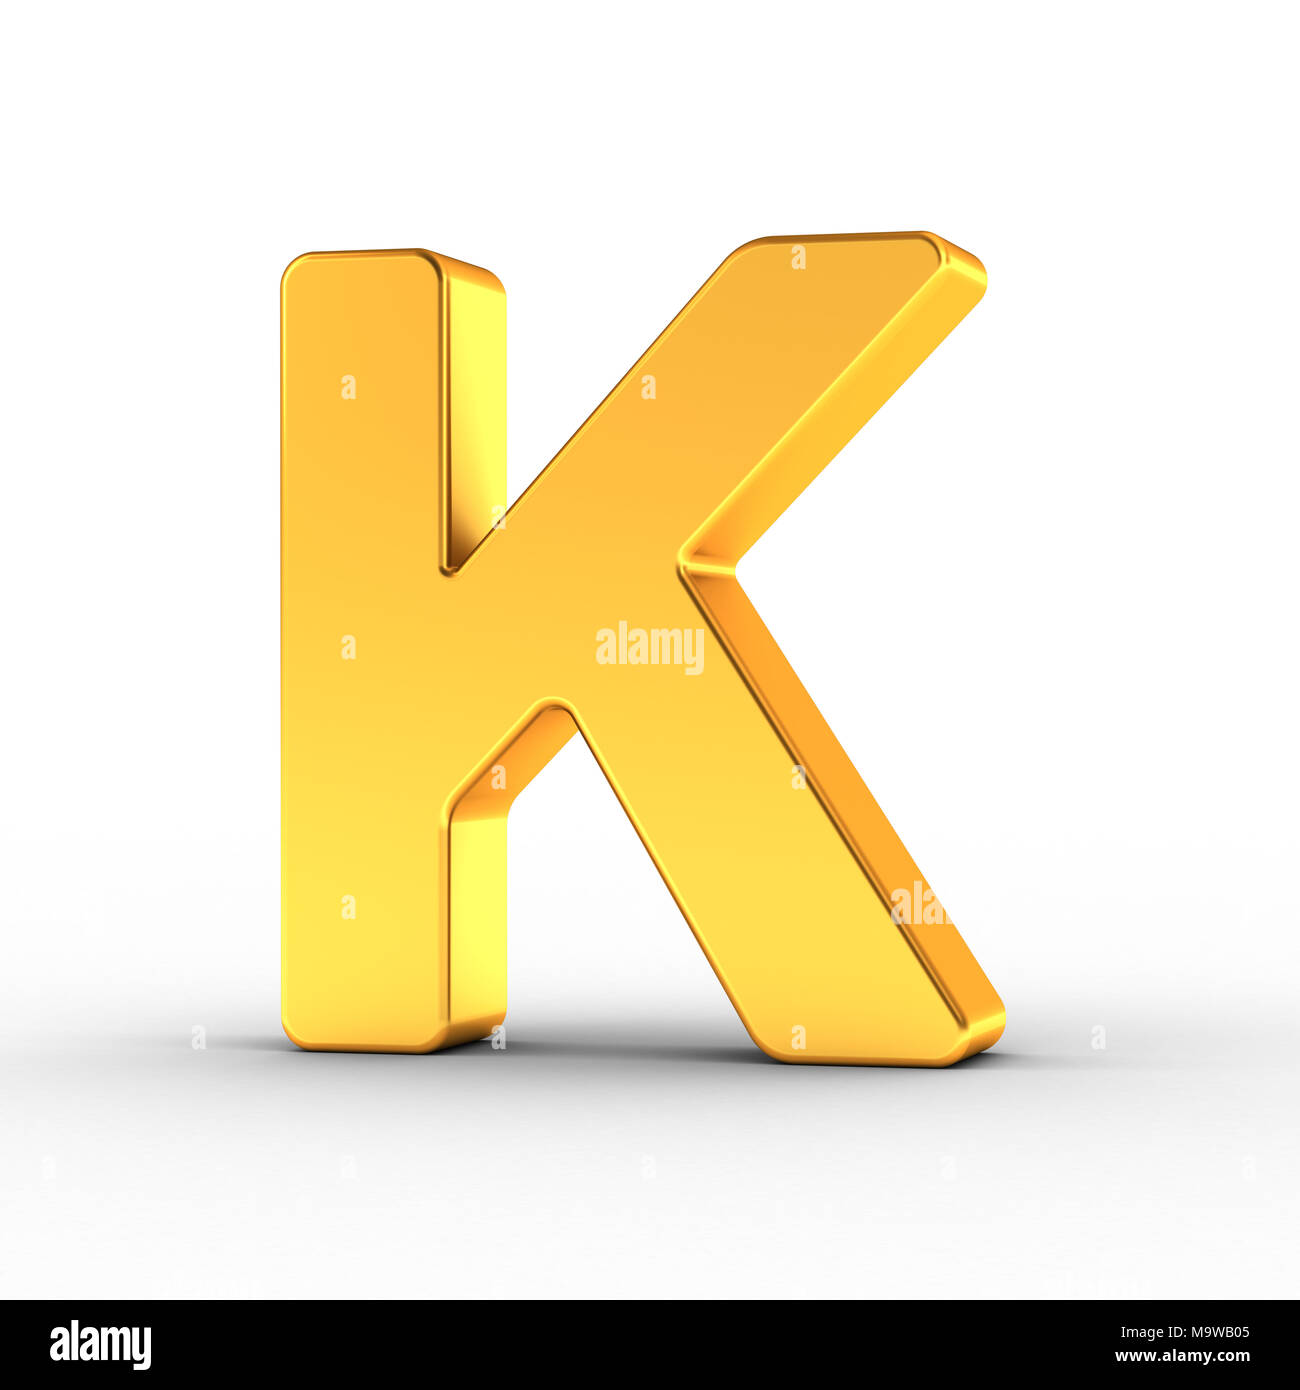 The Letter K as a polished golden object over white background with clipping path for quick and accurate isolation. - Stock Image